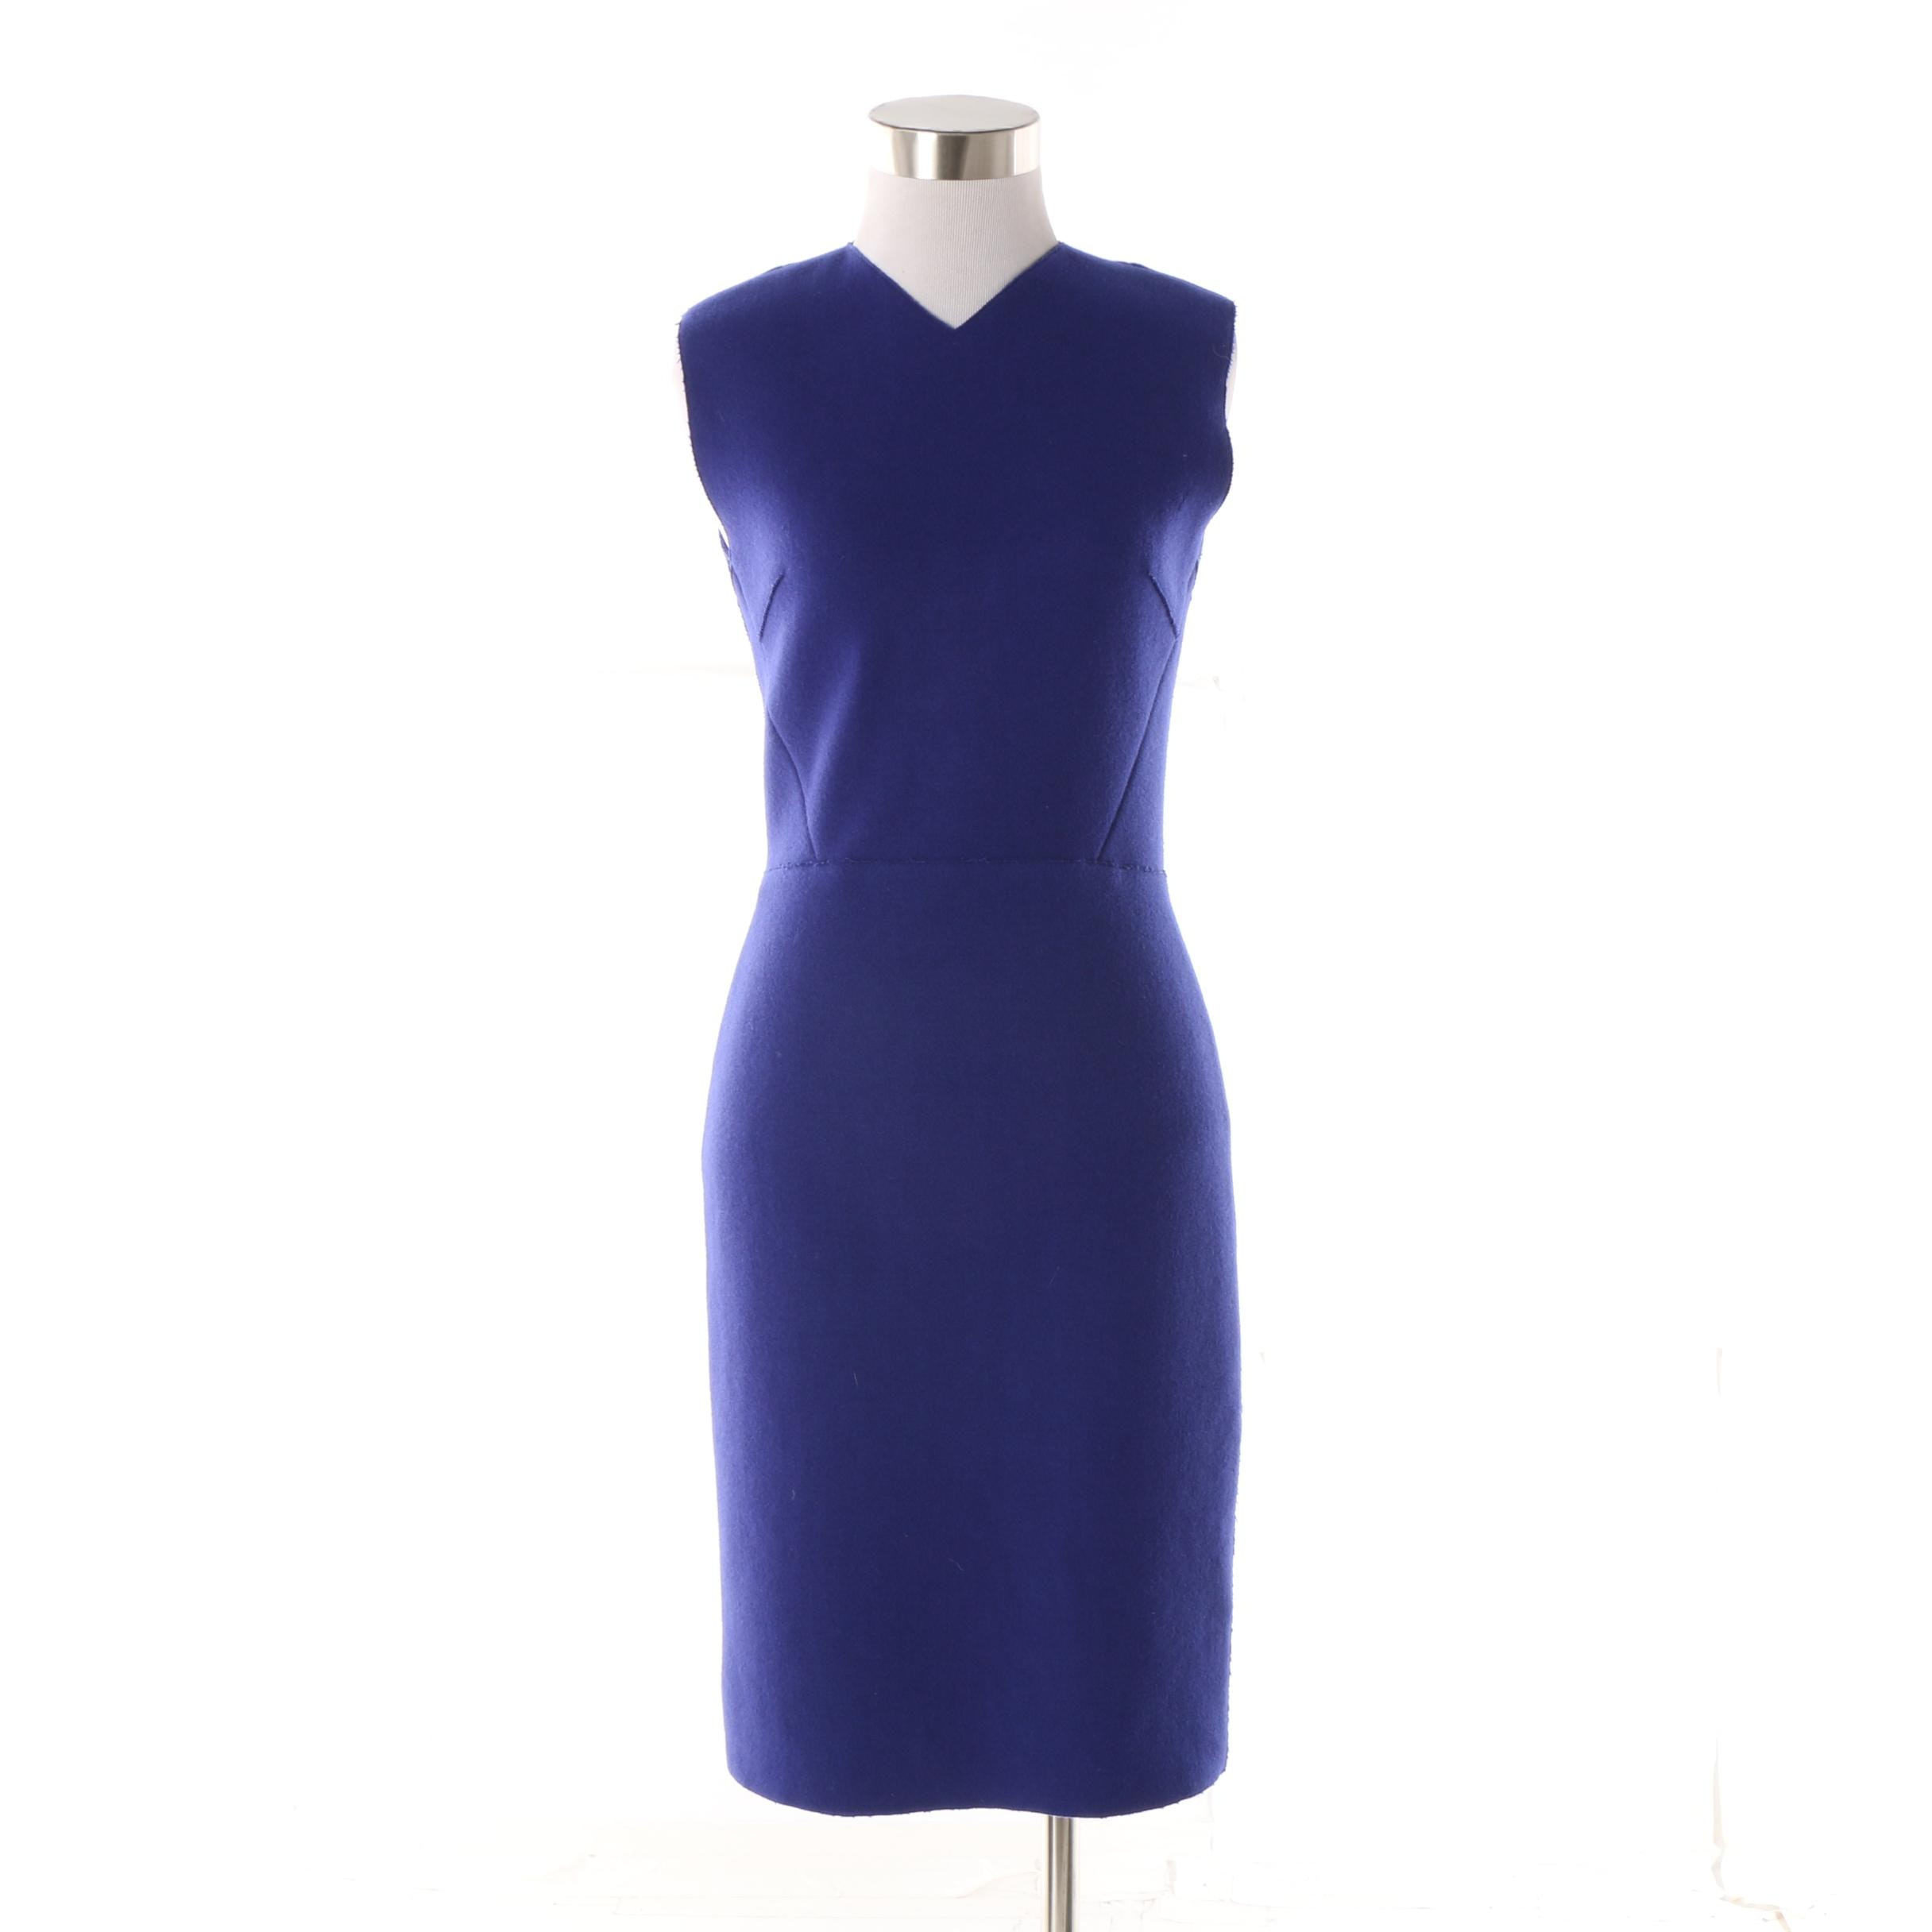 Victoria Beckham Dress No. 284 Royal Blue Wool Sheath Dress